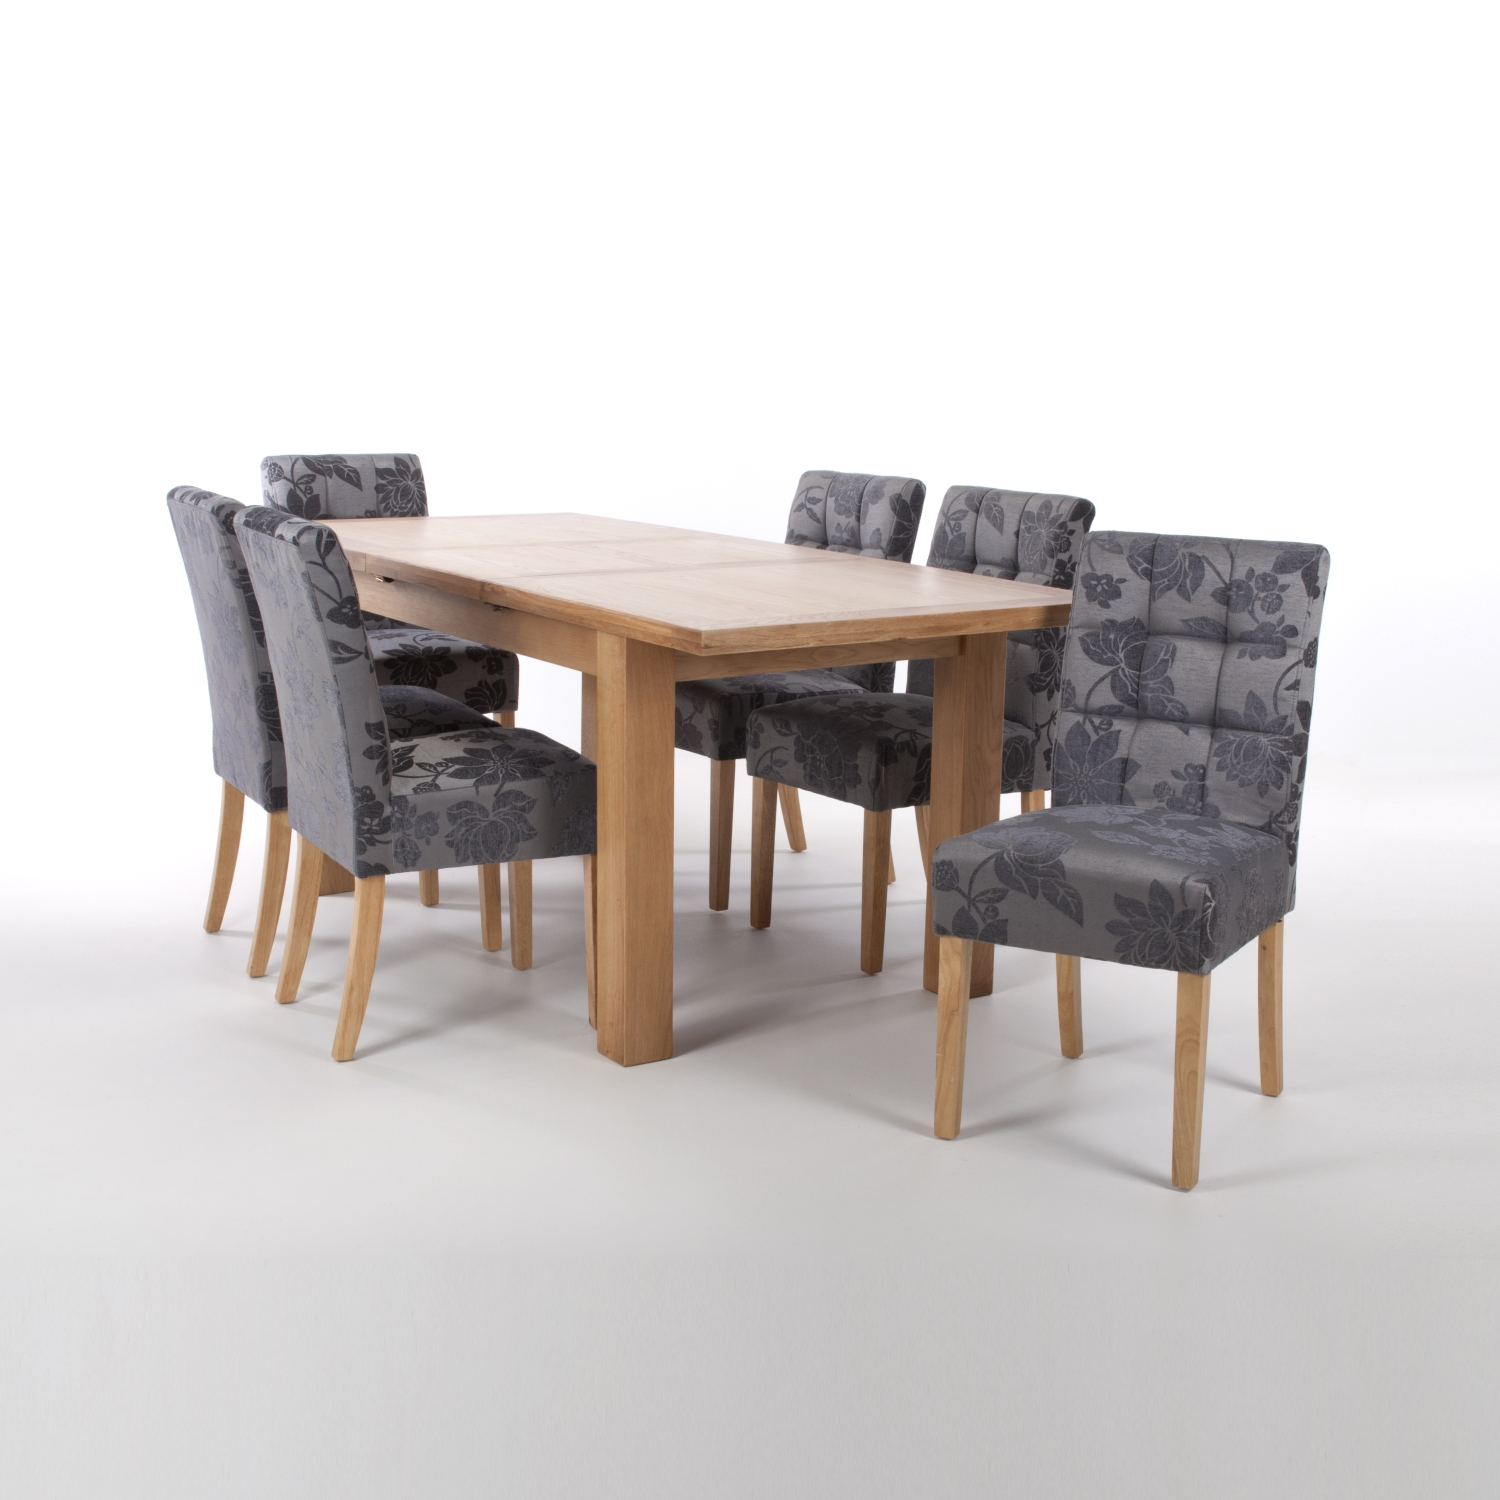 Solid Oak Extendable Dining Table with 6 Stitched Waffle Back Chairs in Linen Effect Steel Grey with Natural legs